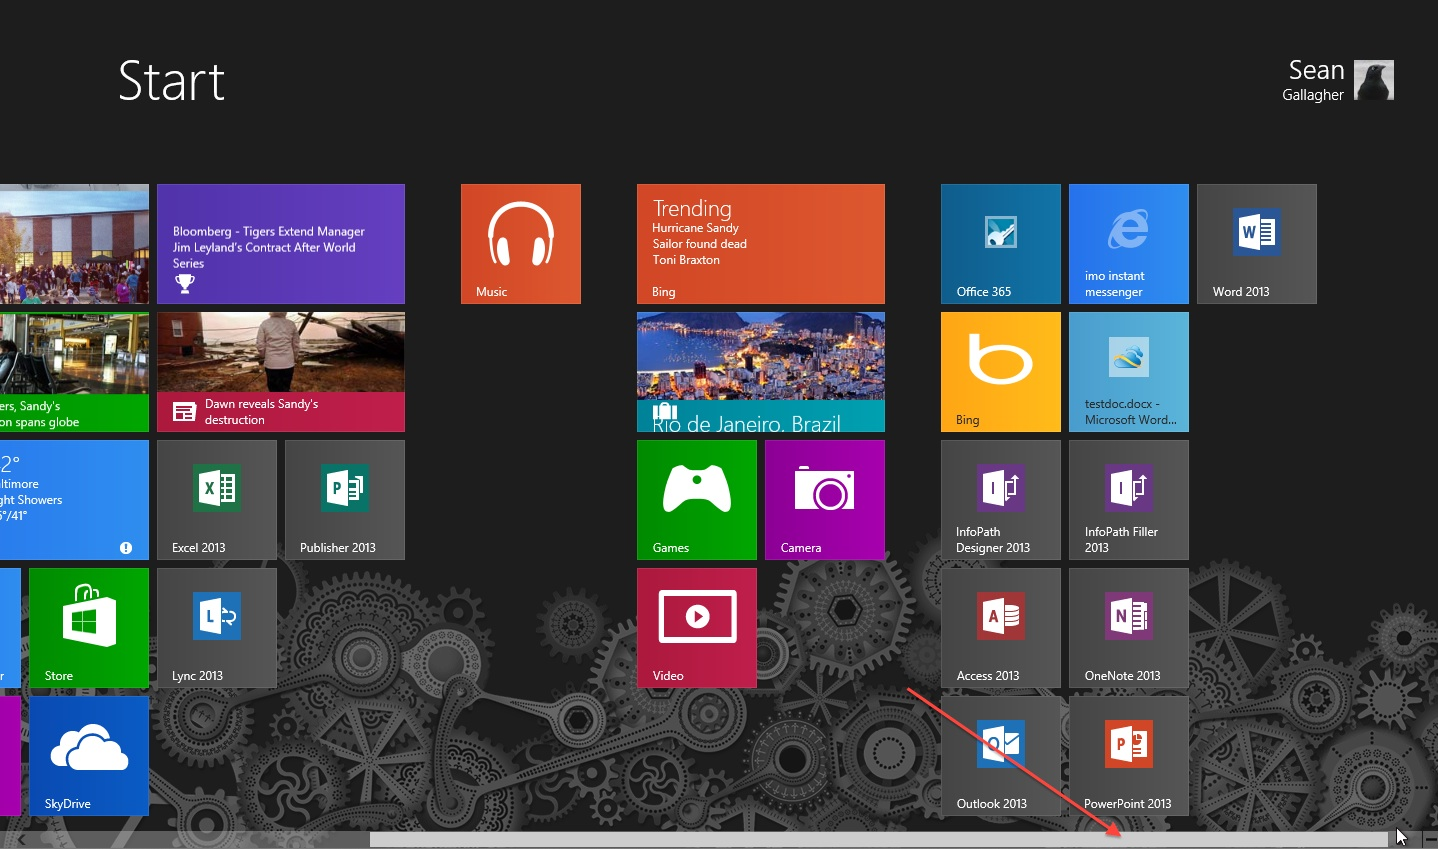 Panning across the Start screen. There's also a scrollbar at the bottom of the start menu if your mouse lacks a scroll wheel.